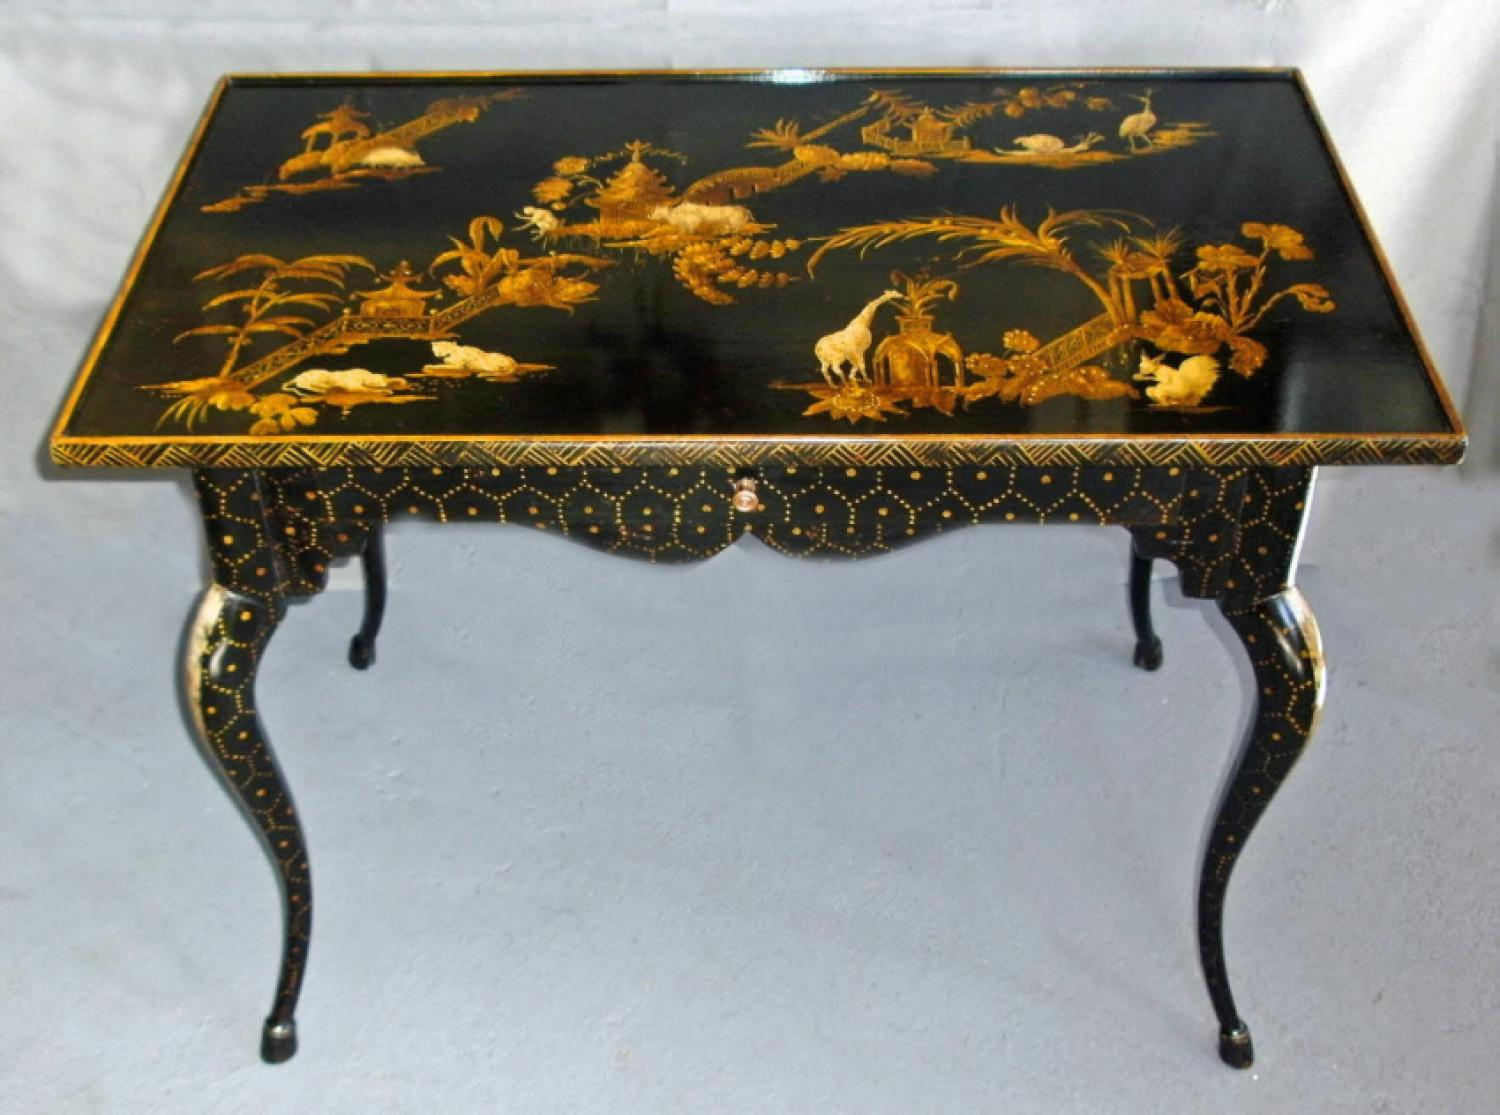 Jansen School black lacquered chinoiserie decorated table c1920